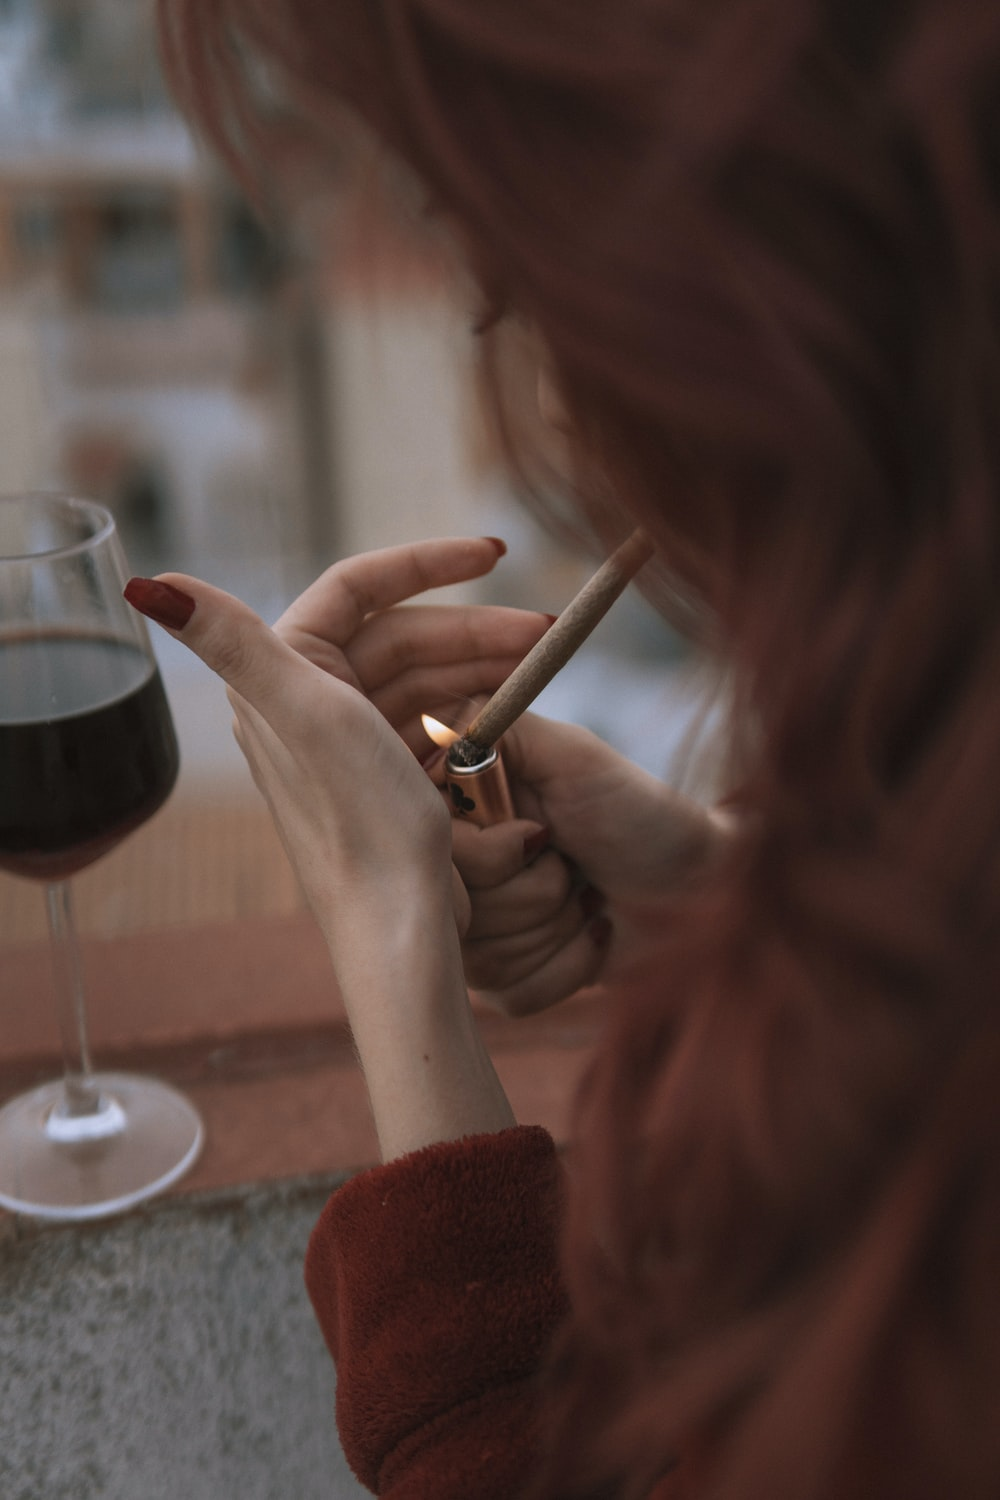 woman holding a wine glass